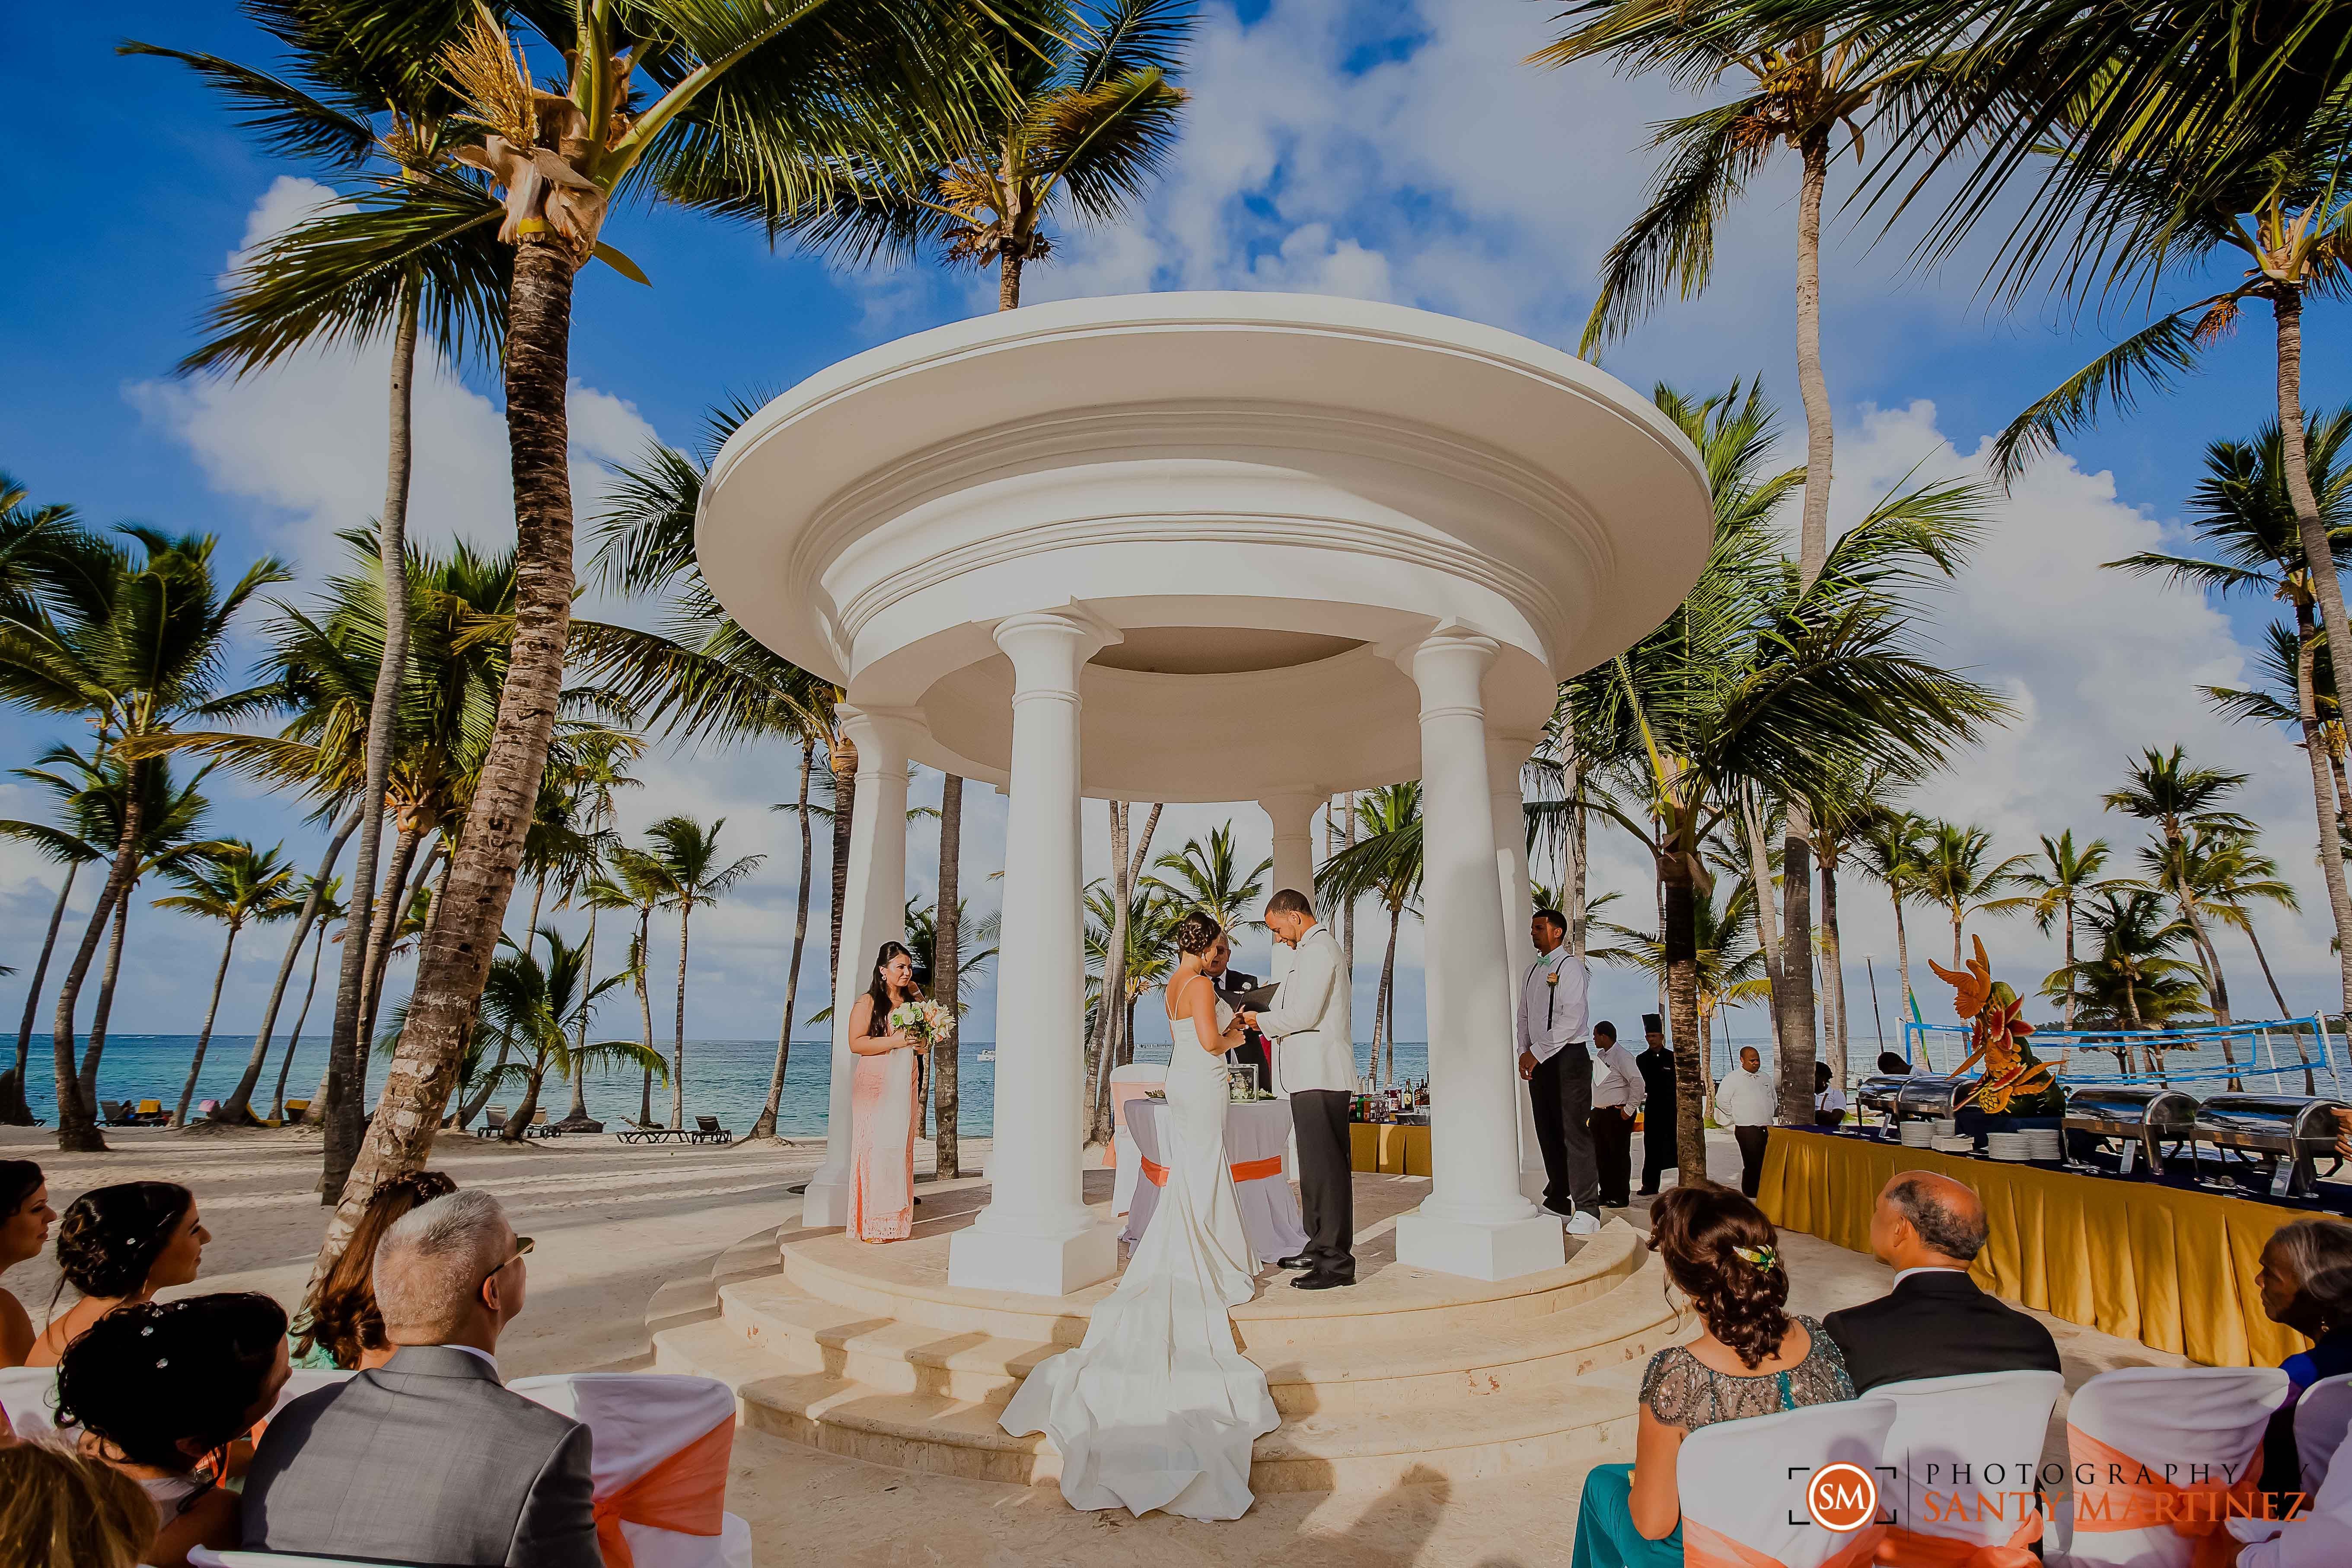 Wedding At Barcelo Bavaro Palace Deluxe Punta Cana Republica Dominicana Photography By